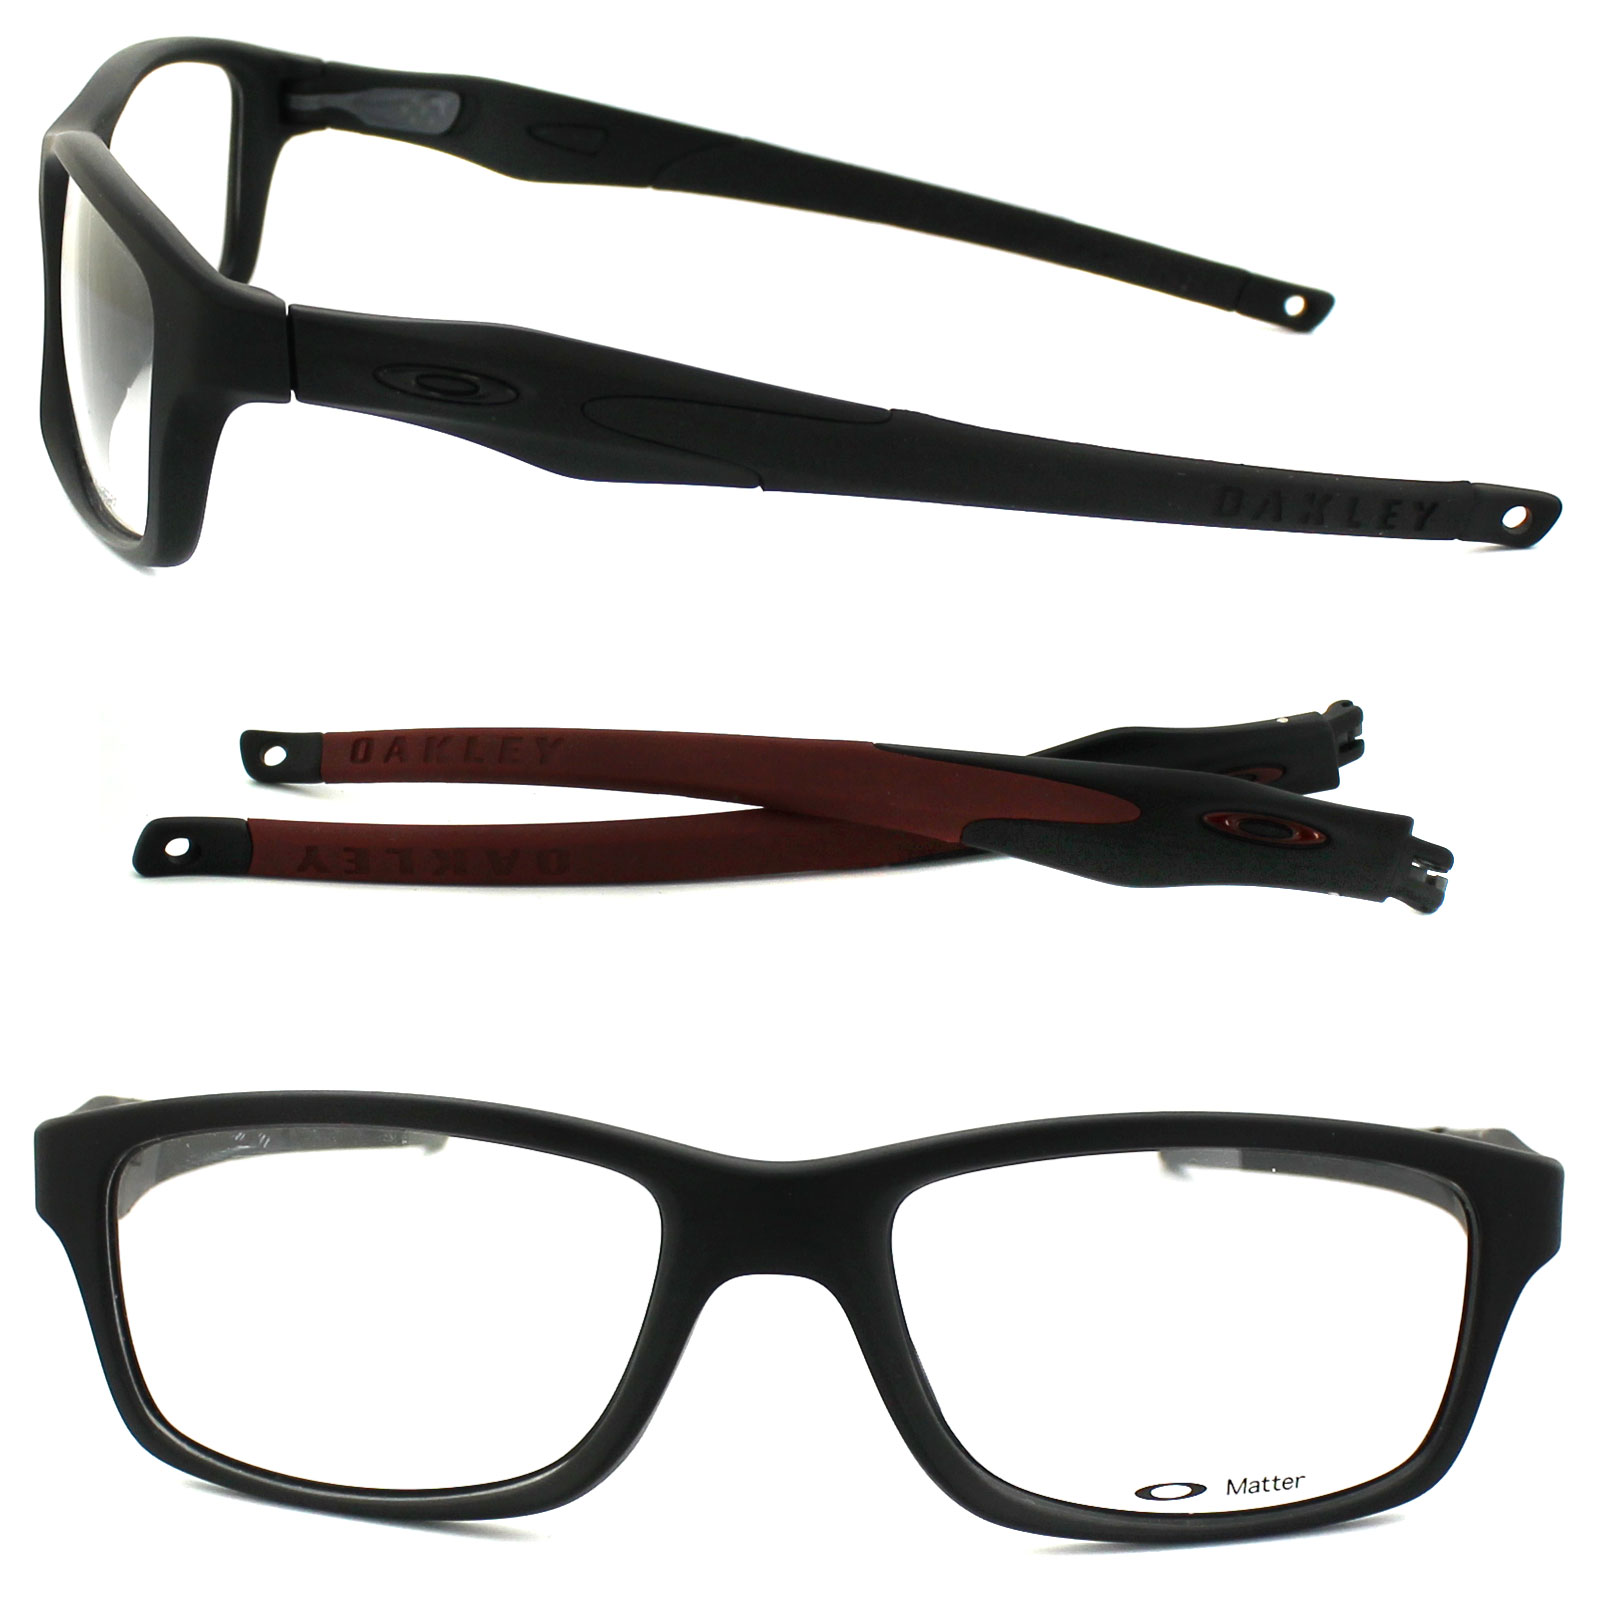 Glasses Frames Xl : Cheap Oakley Crosslink XL Glasses Frames - Discounted ...